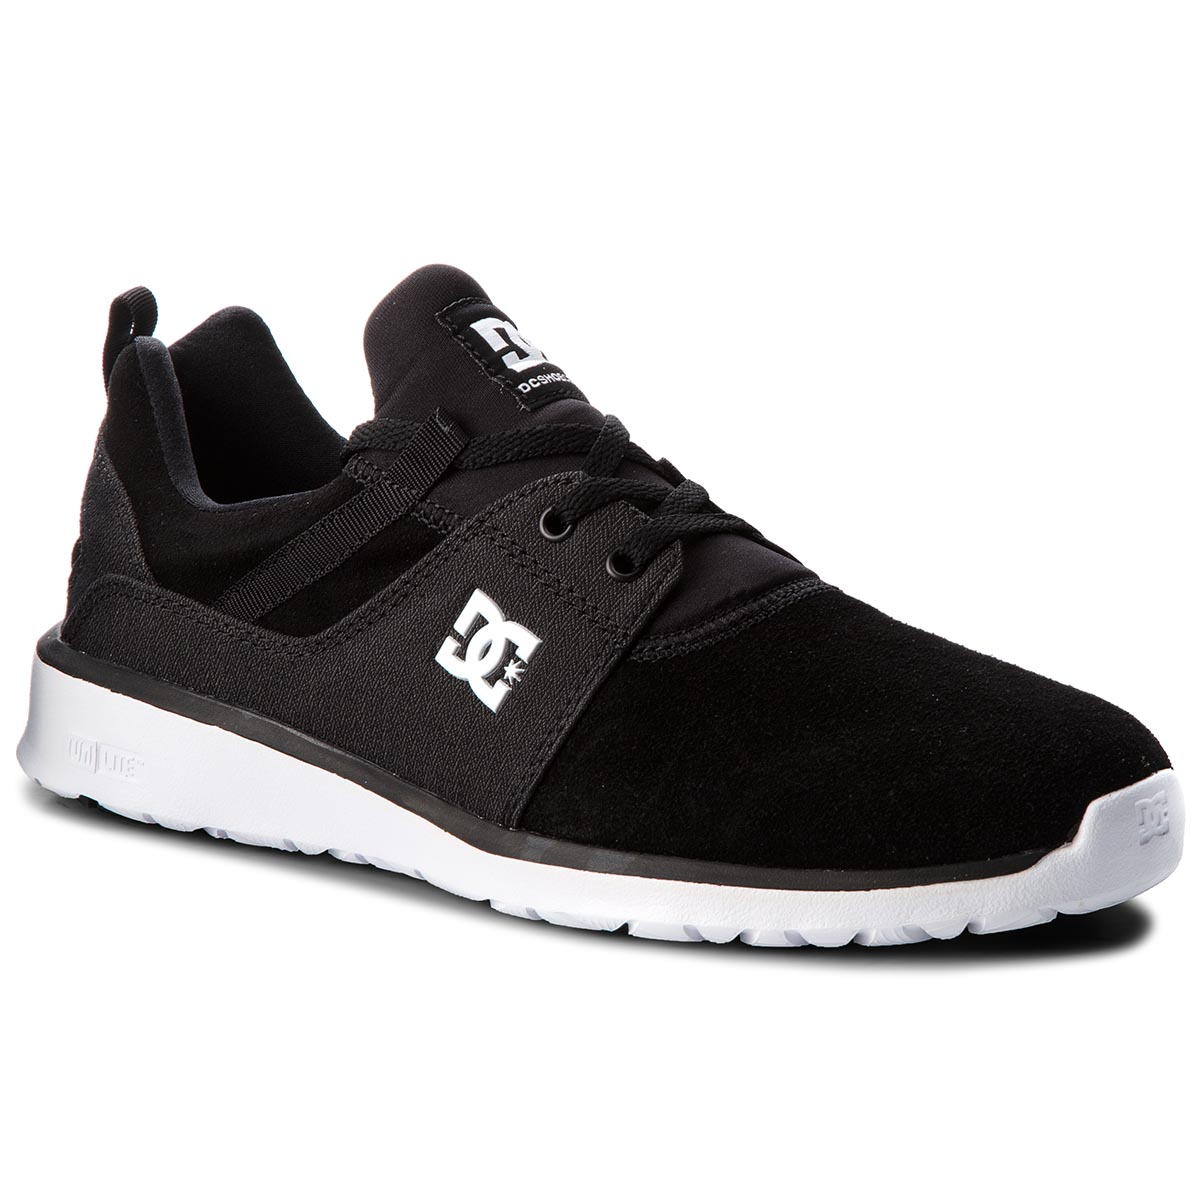 Sneakers DC - Heathrow Se ADYS700073 Black/Battleship/White (Kbw)